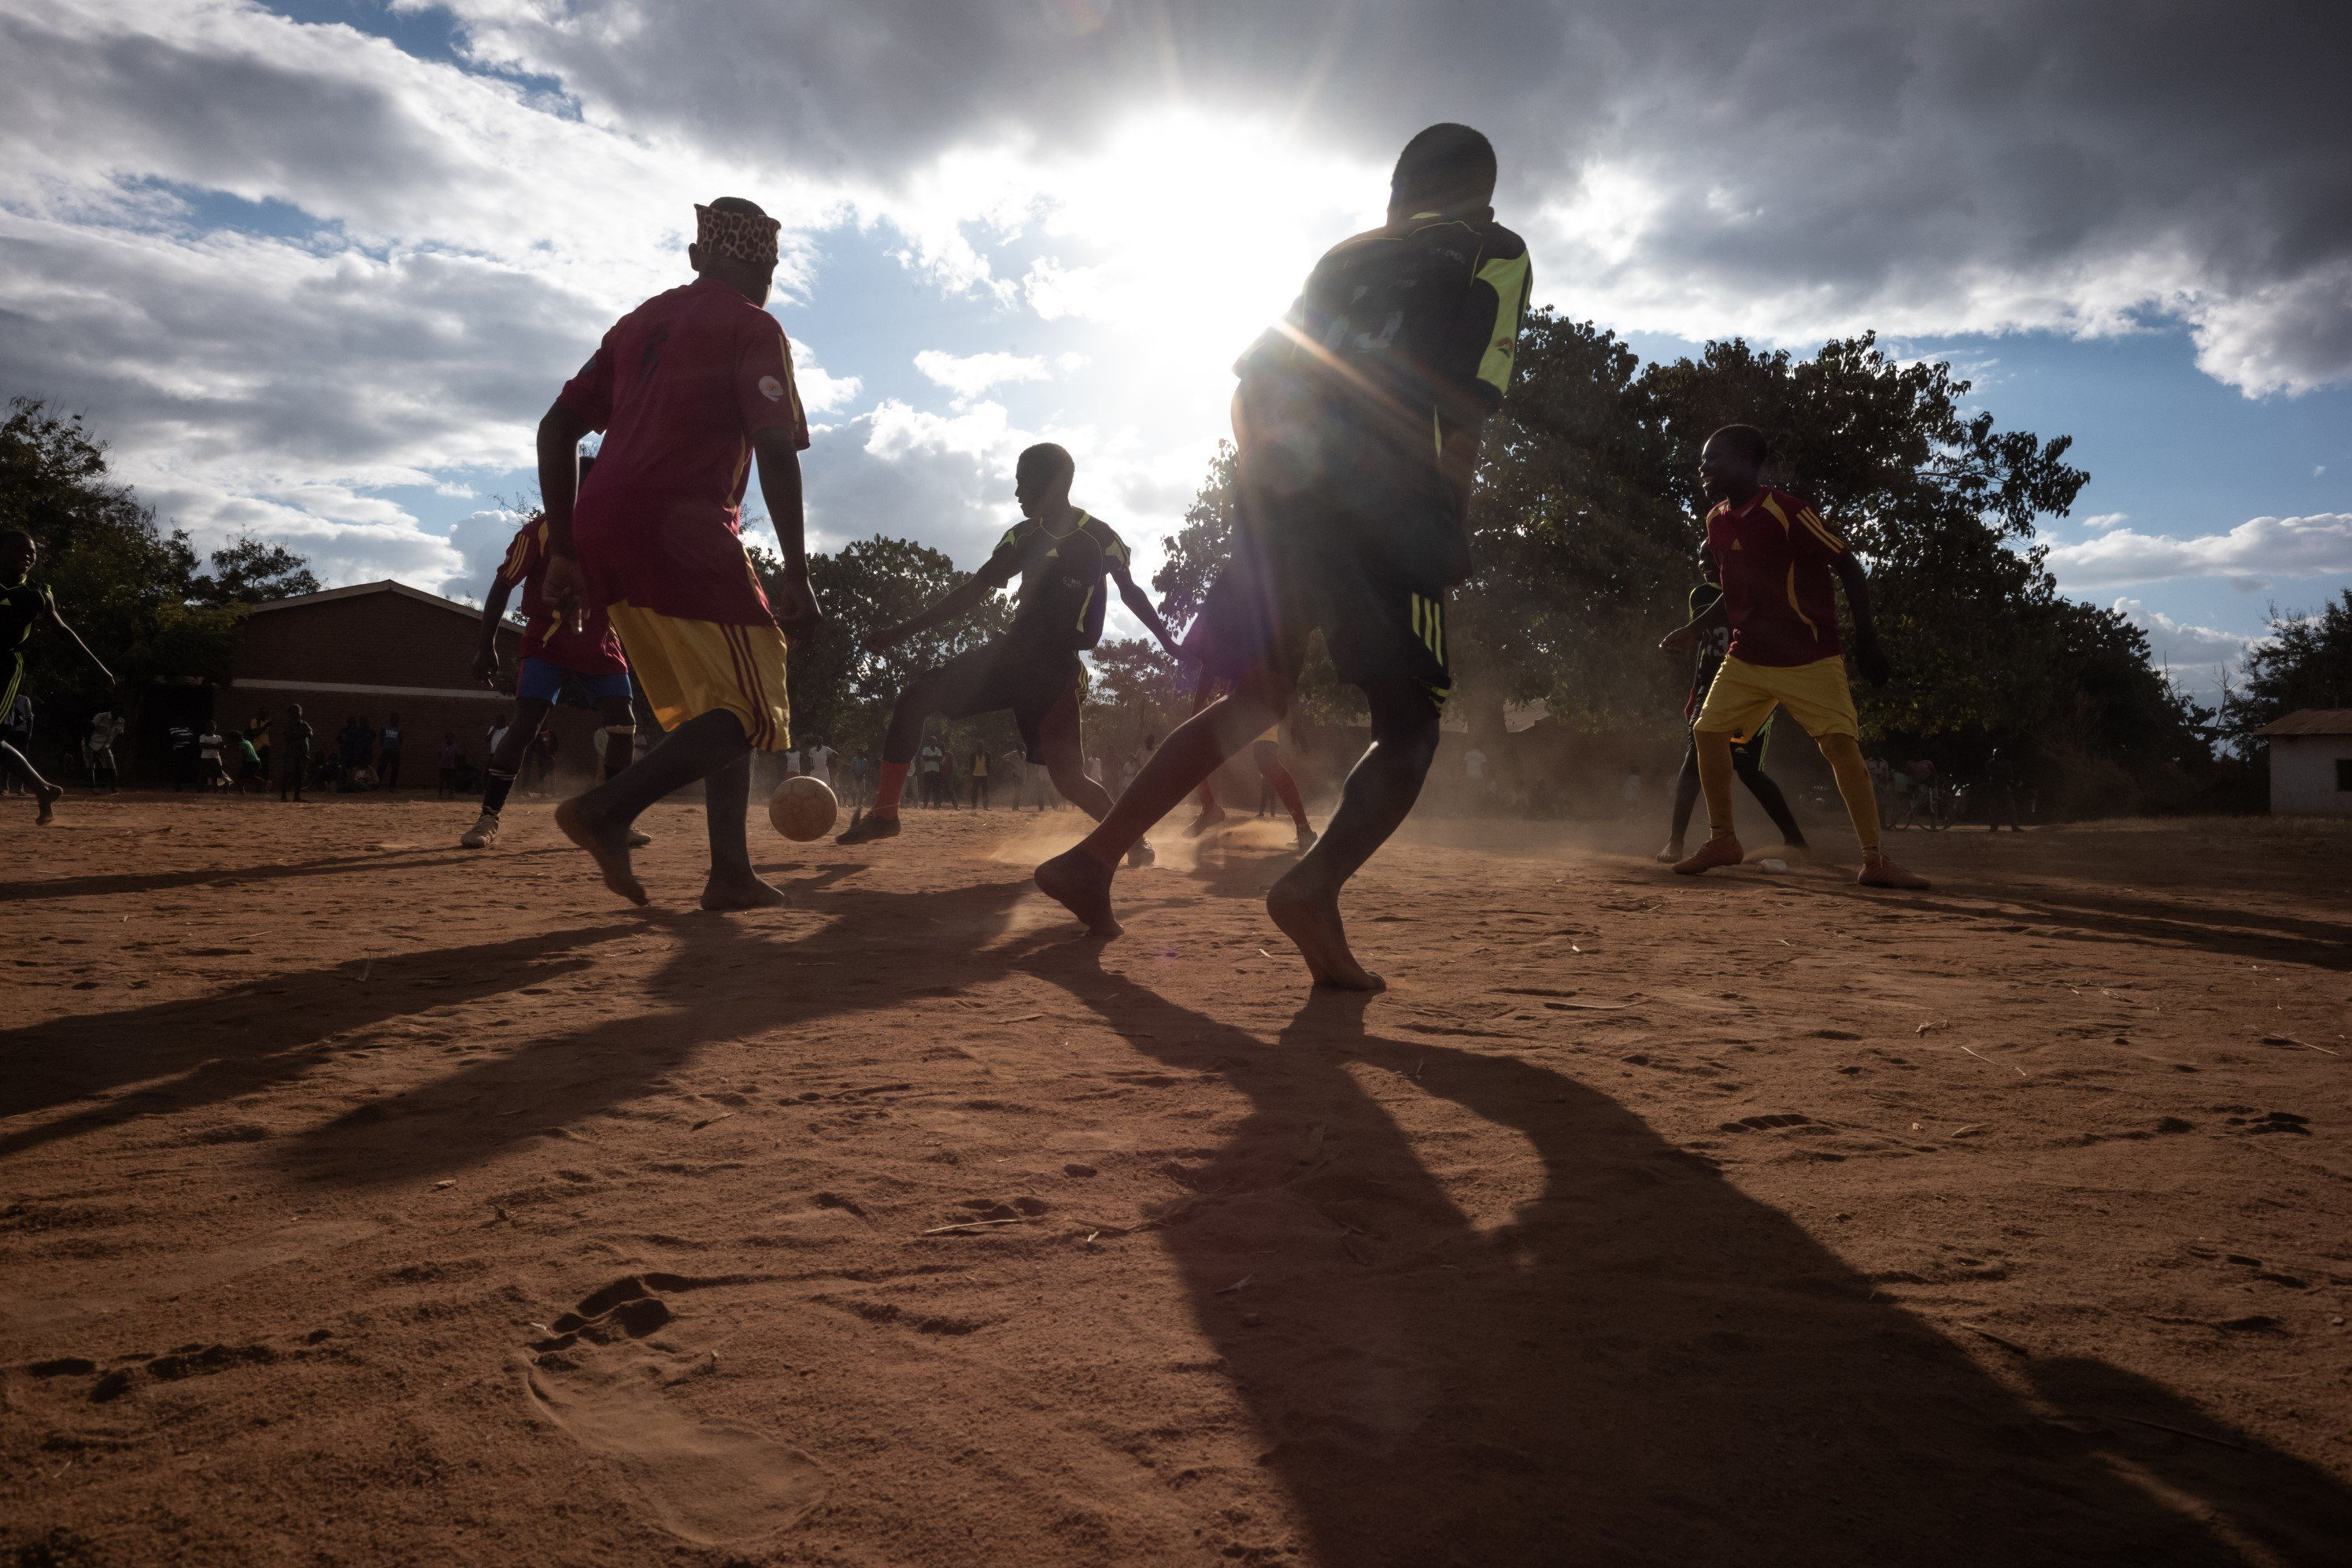 We bring boys and girls together to play football to encourage gender equity.